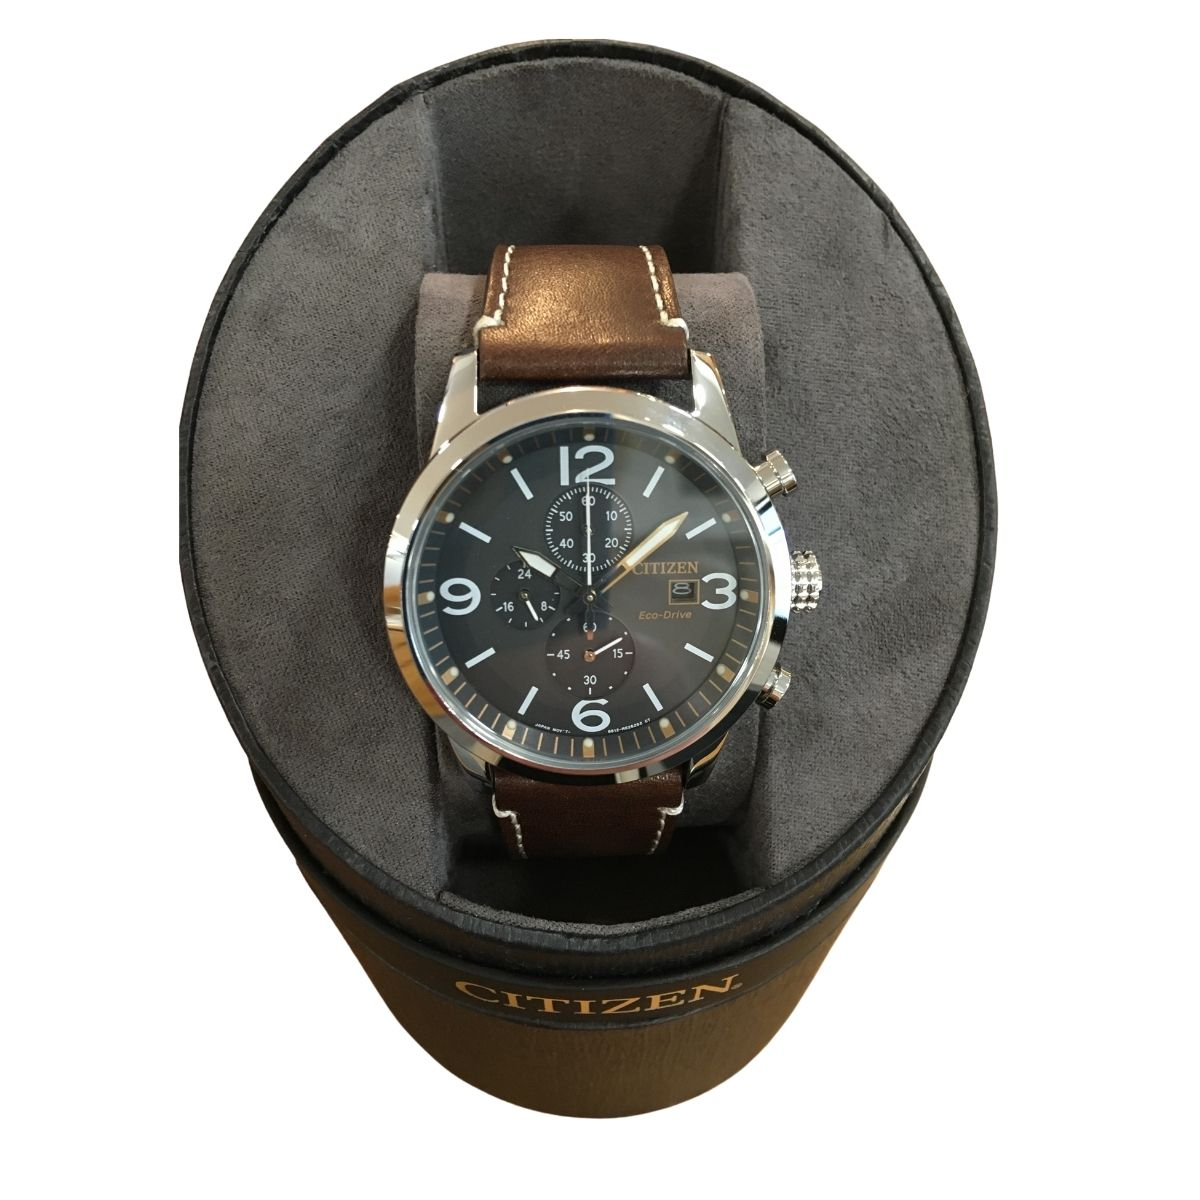 Citizen Eco-Drive Mens Watch - Chocolate Brown Strap - Cahalan Jewellers